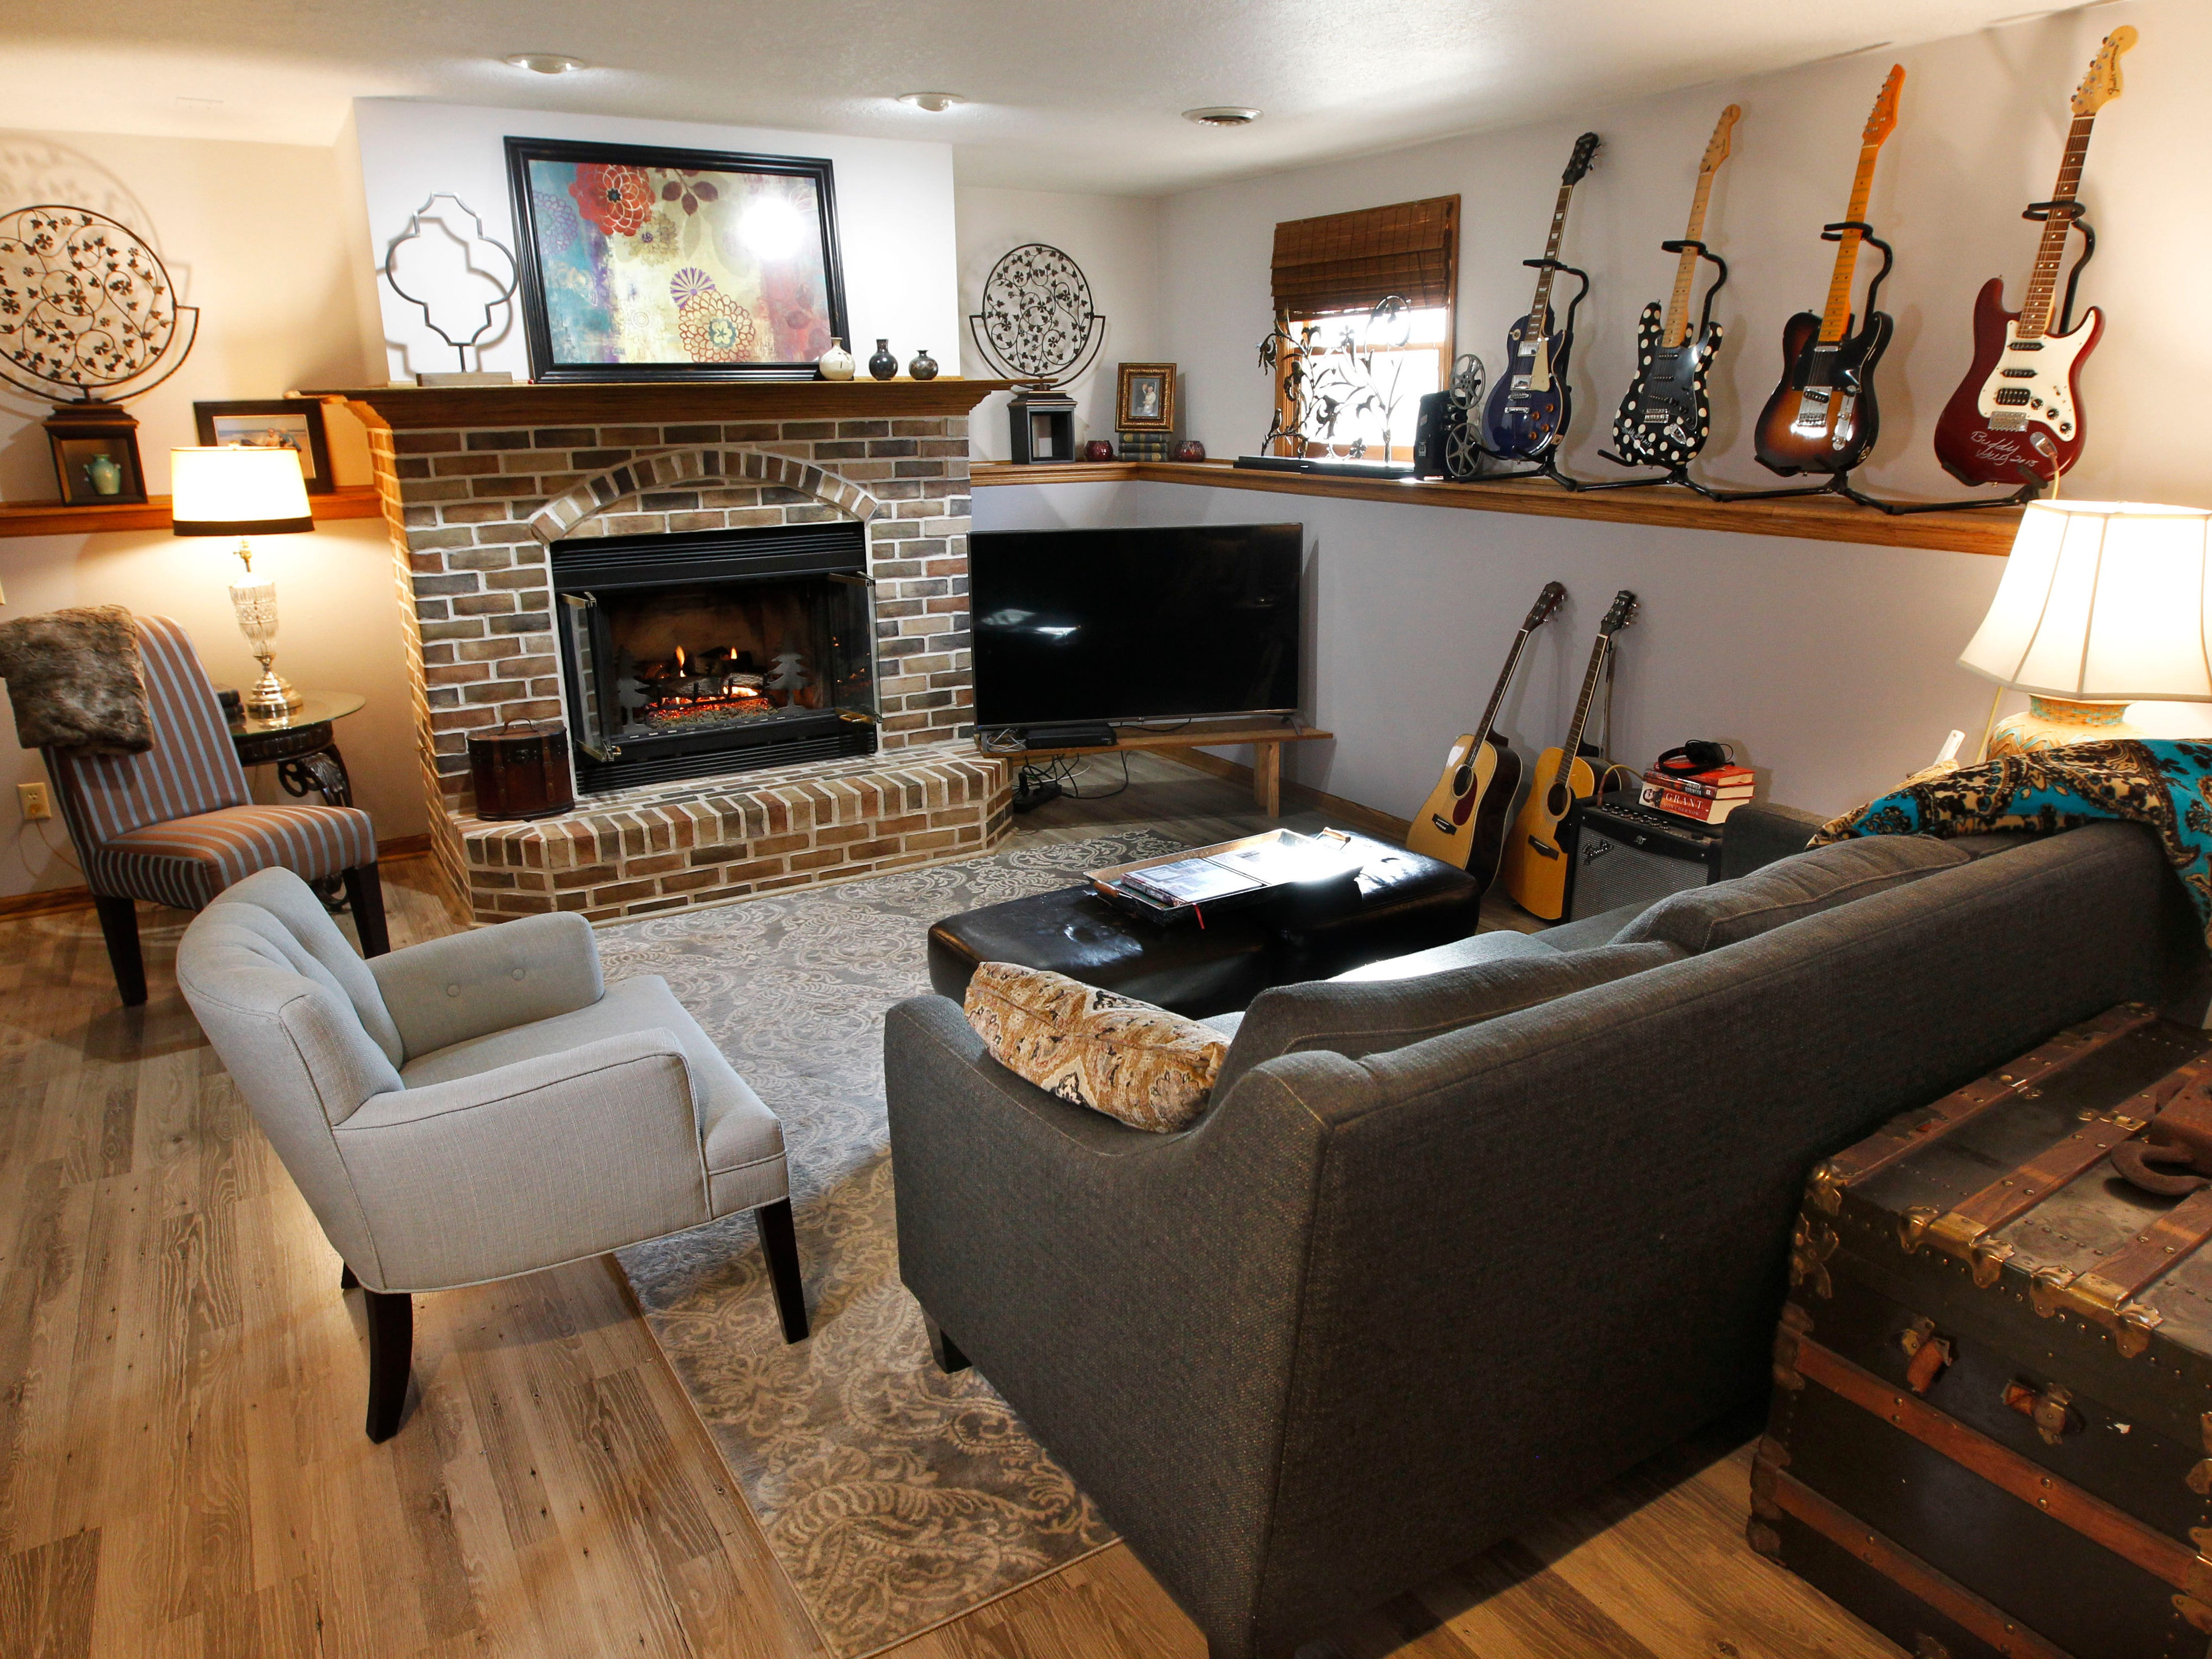 Bob Johanning created this family room space in the home's lower level.